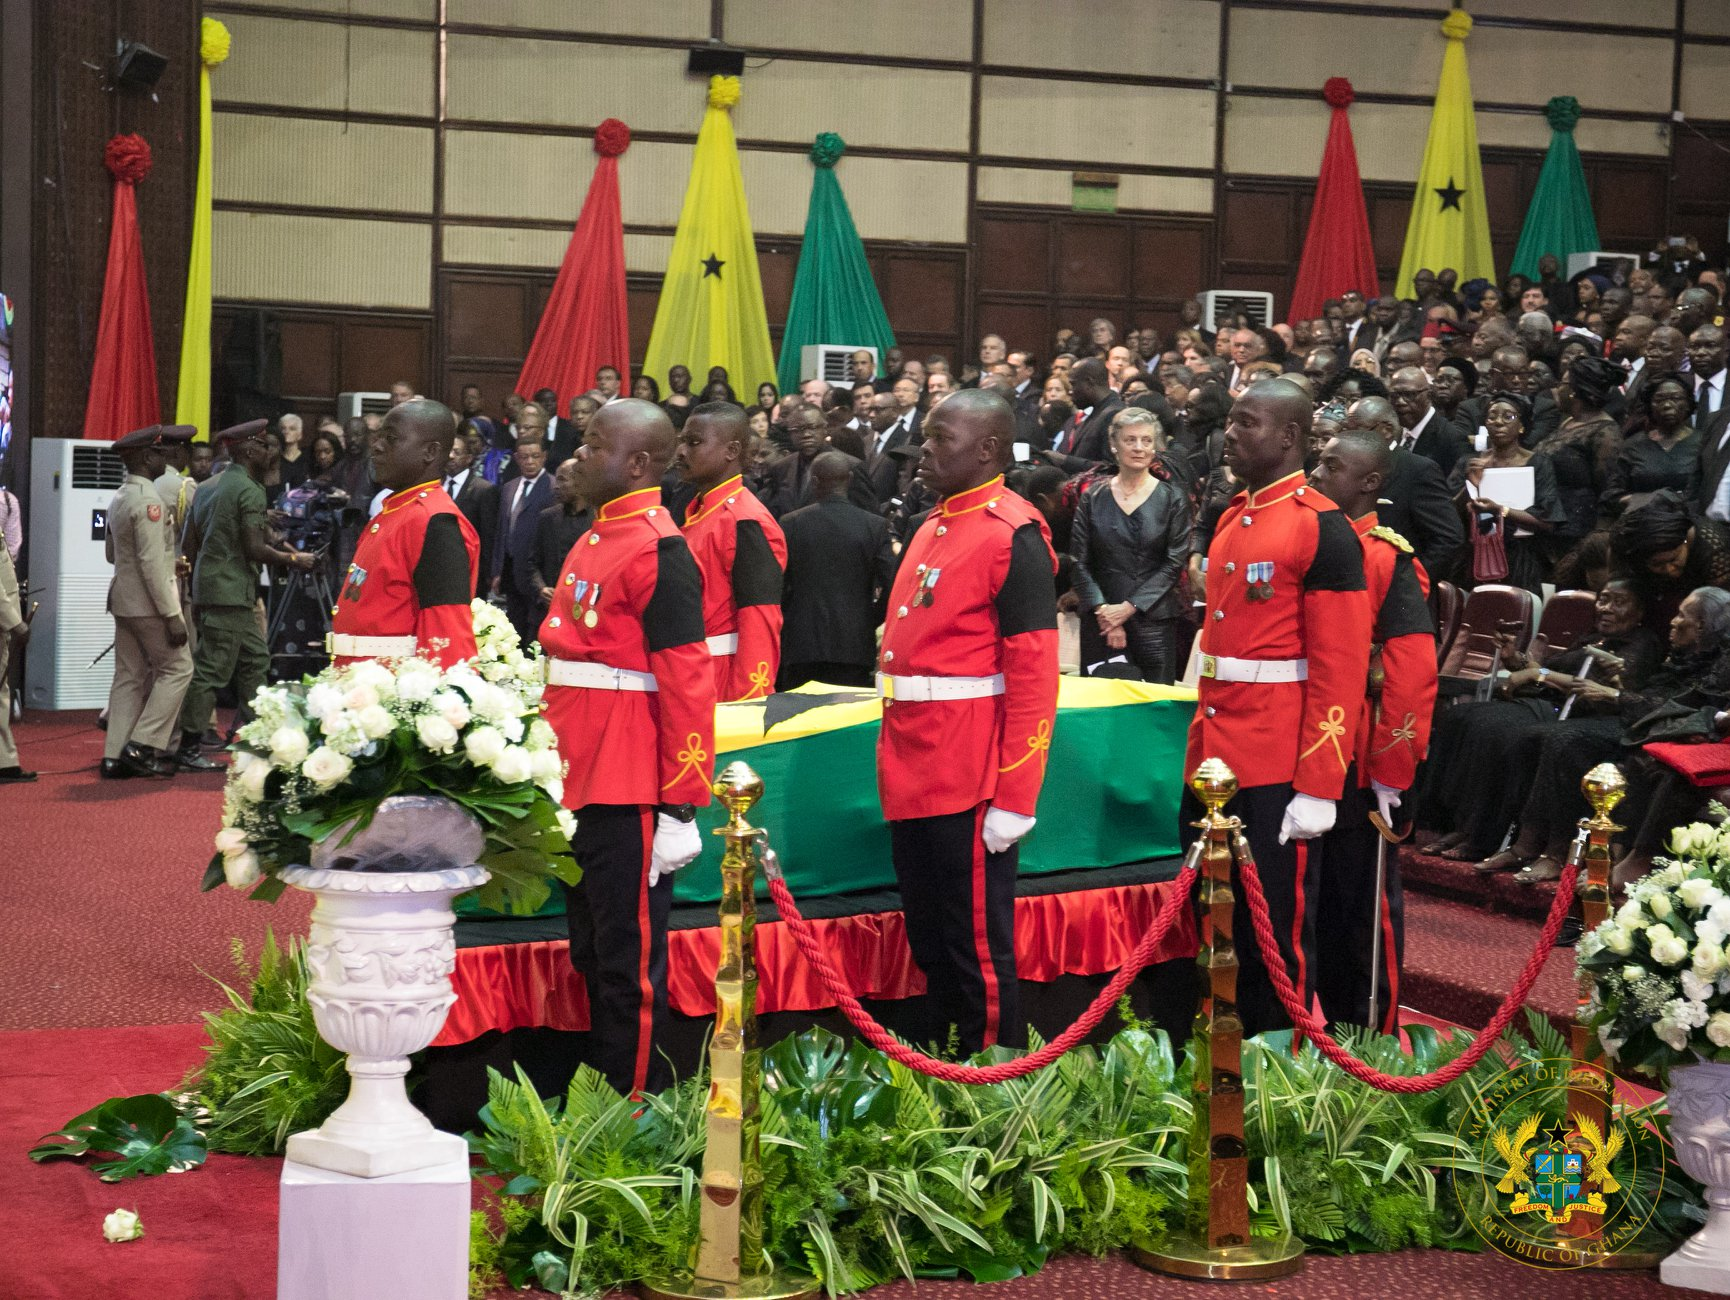 Casket of Kofi Annan at the Conference Centre